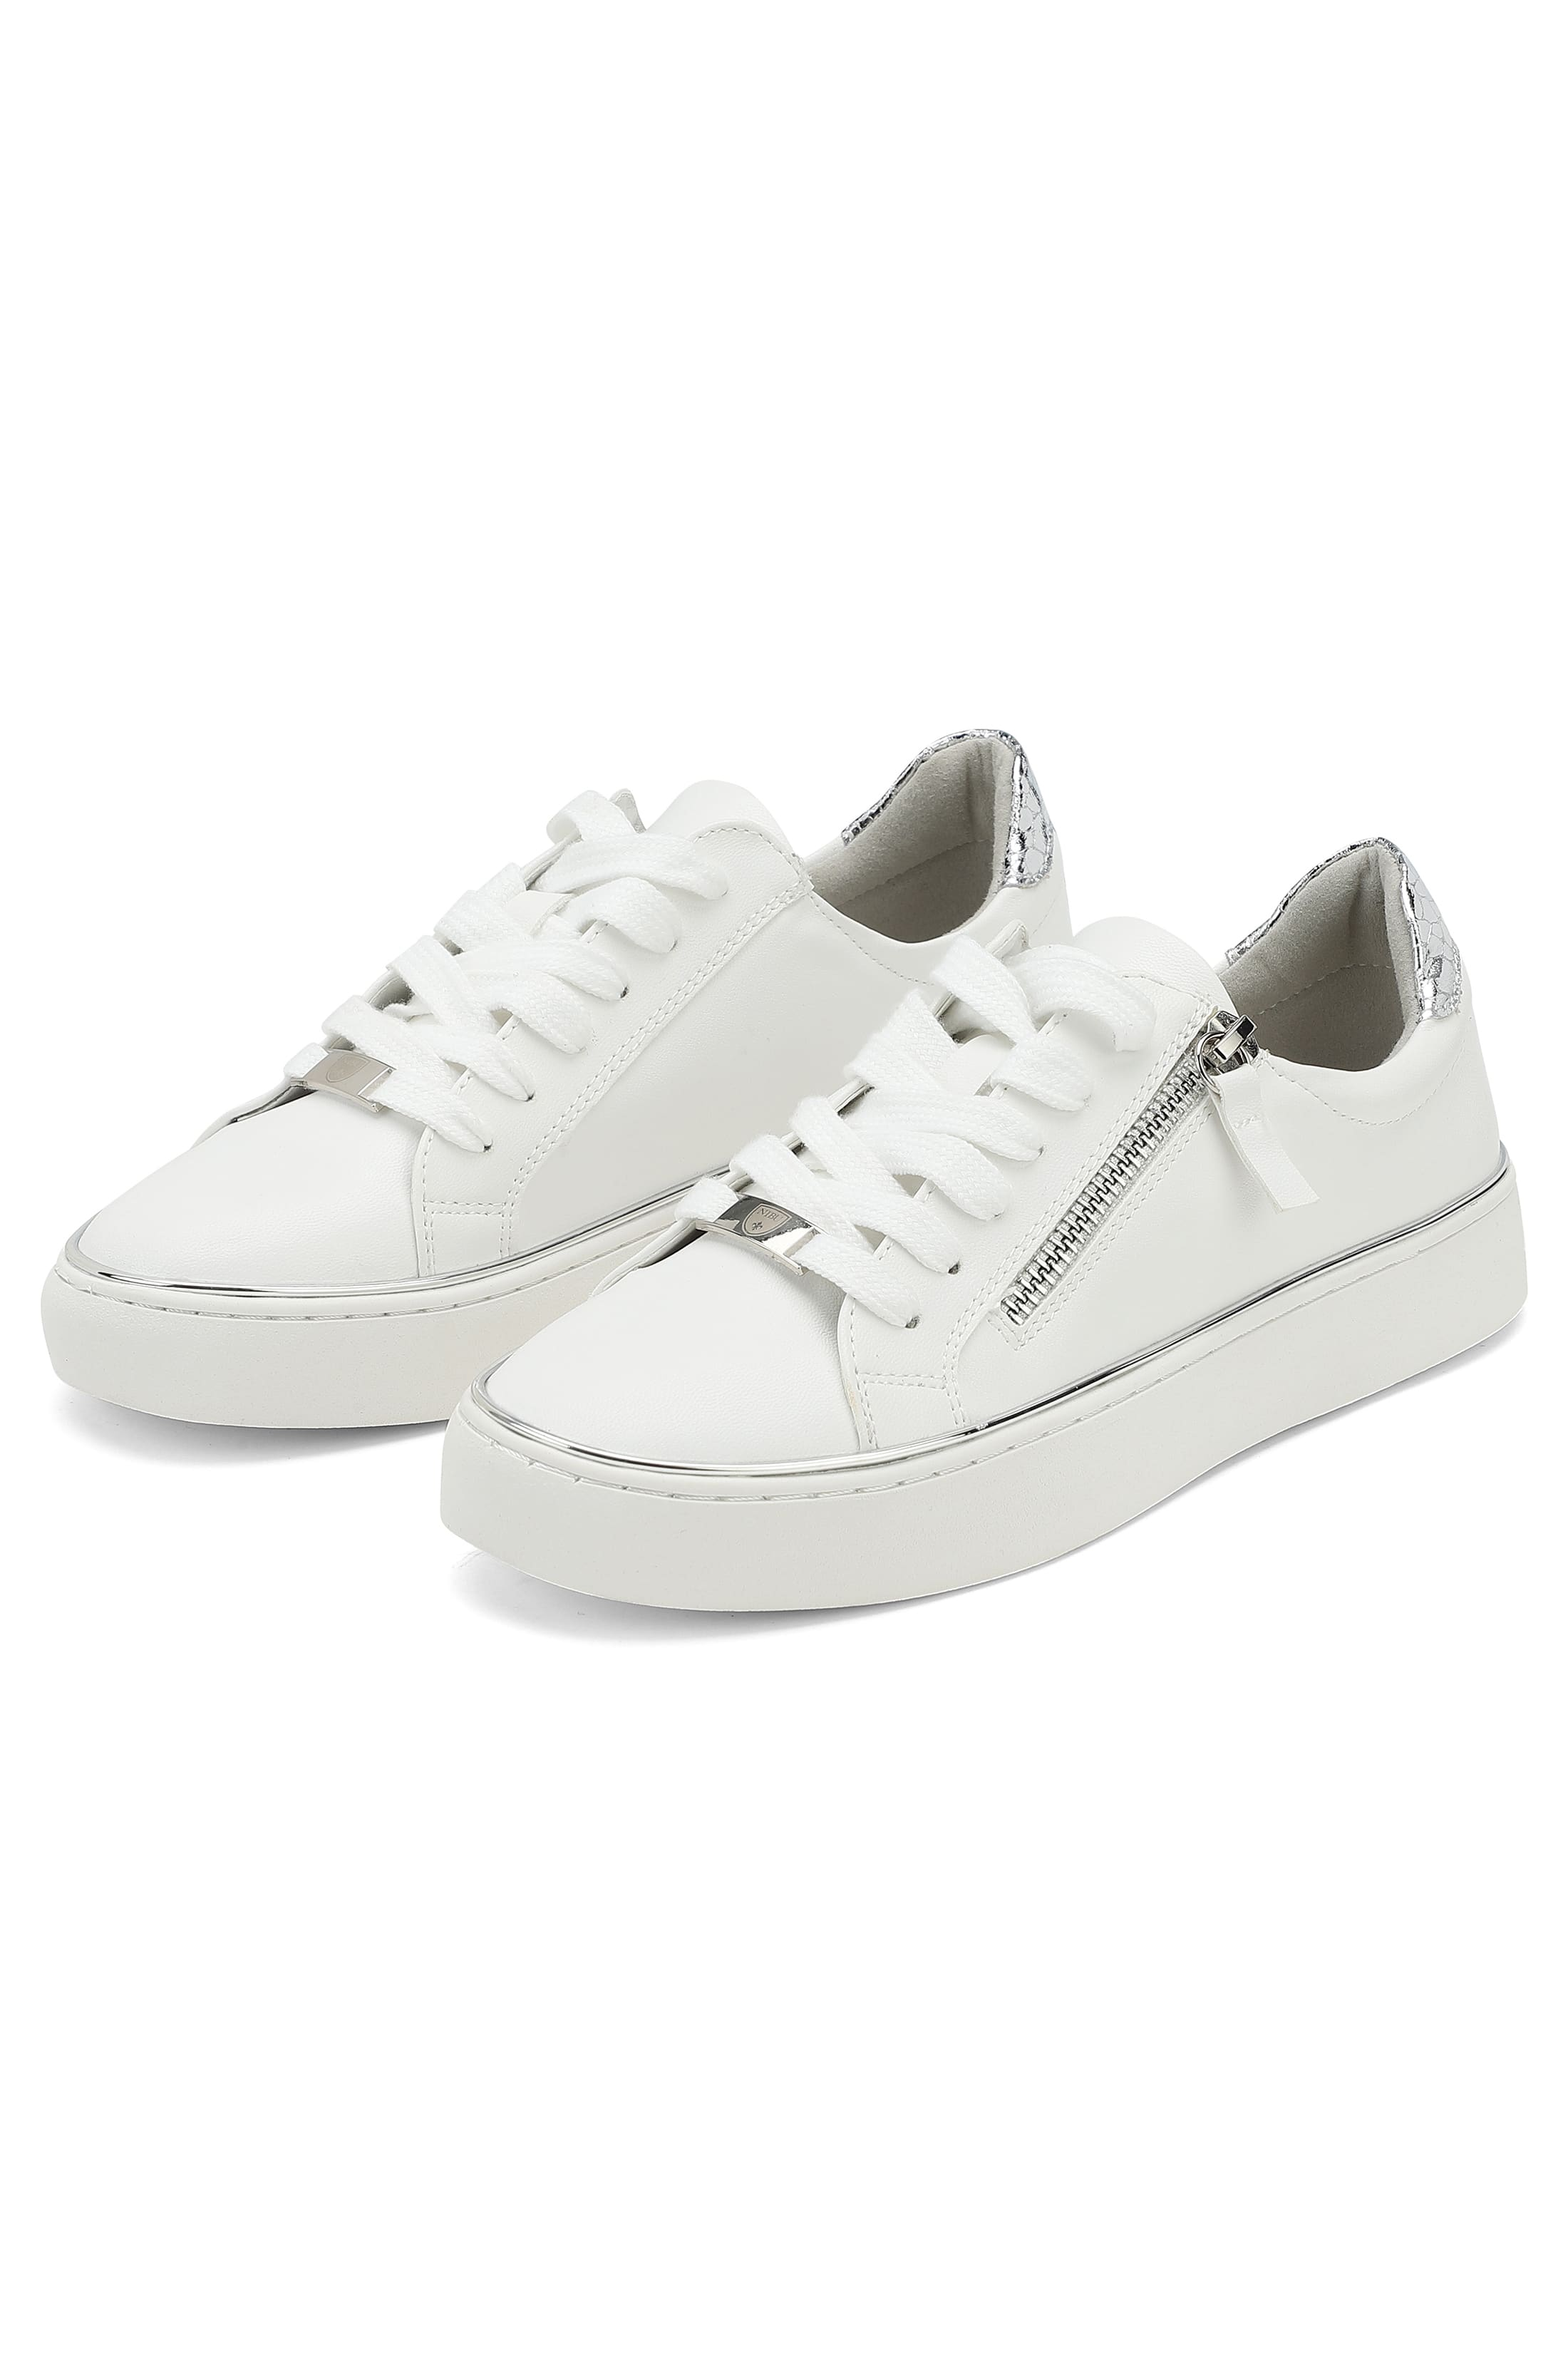 White sneakers with silver-coloured zipper